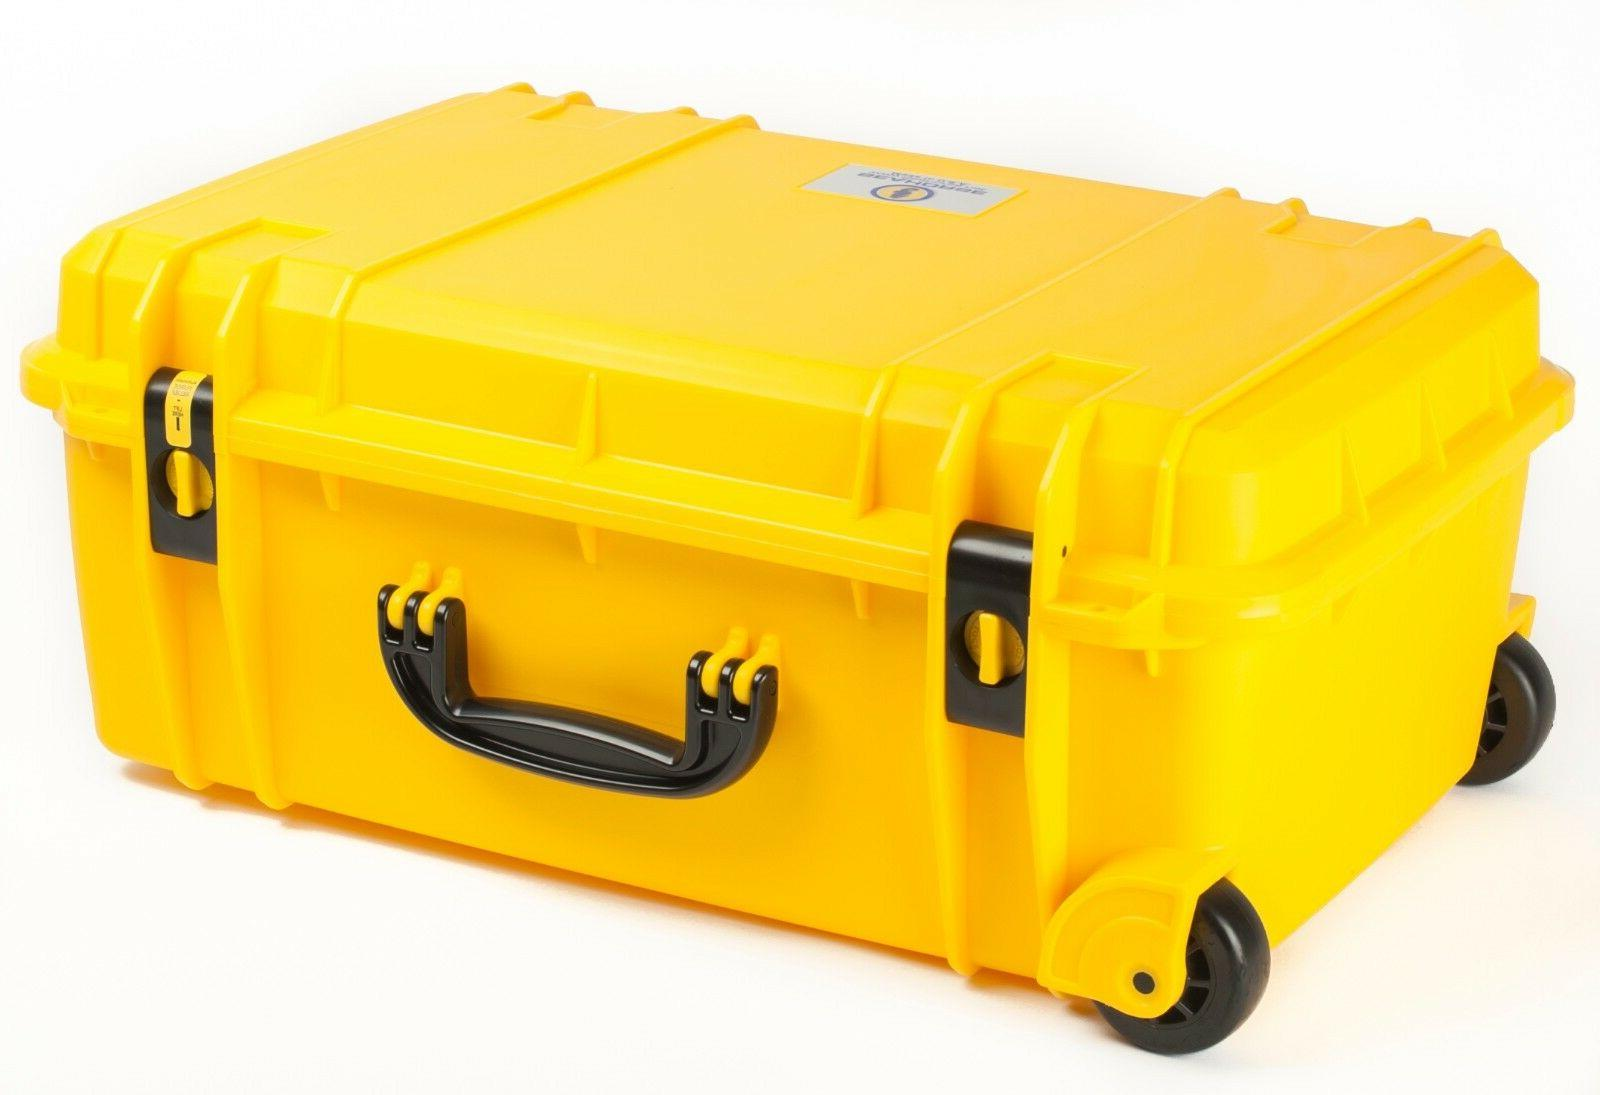 920 Yellow SE920 Case. With